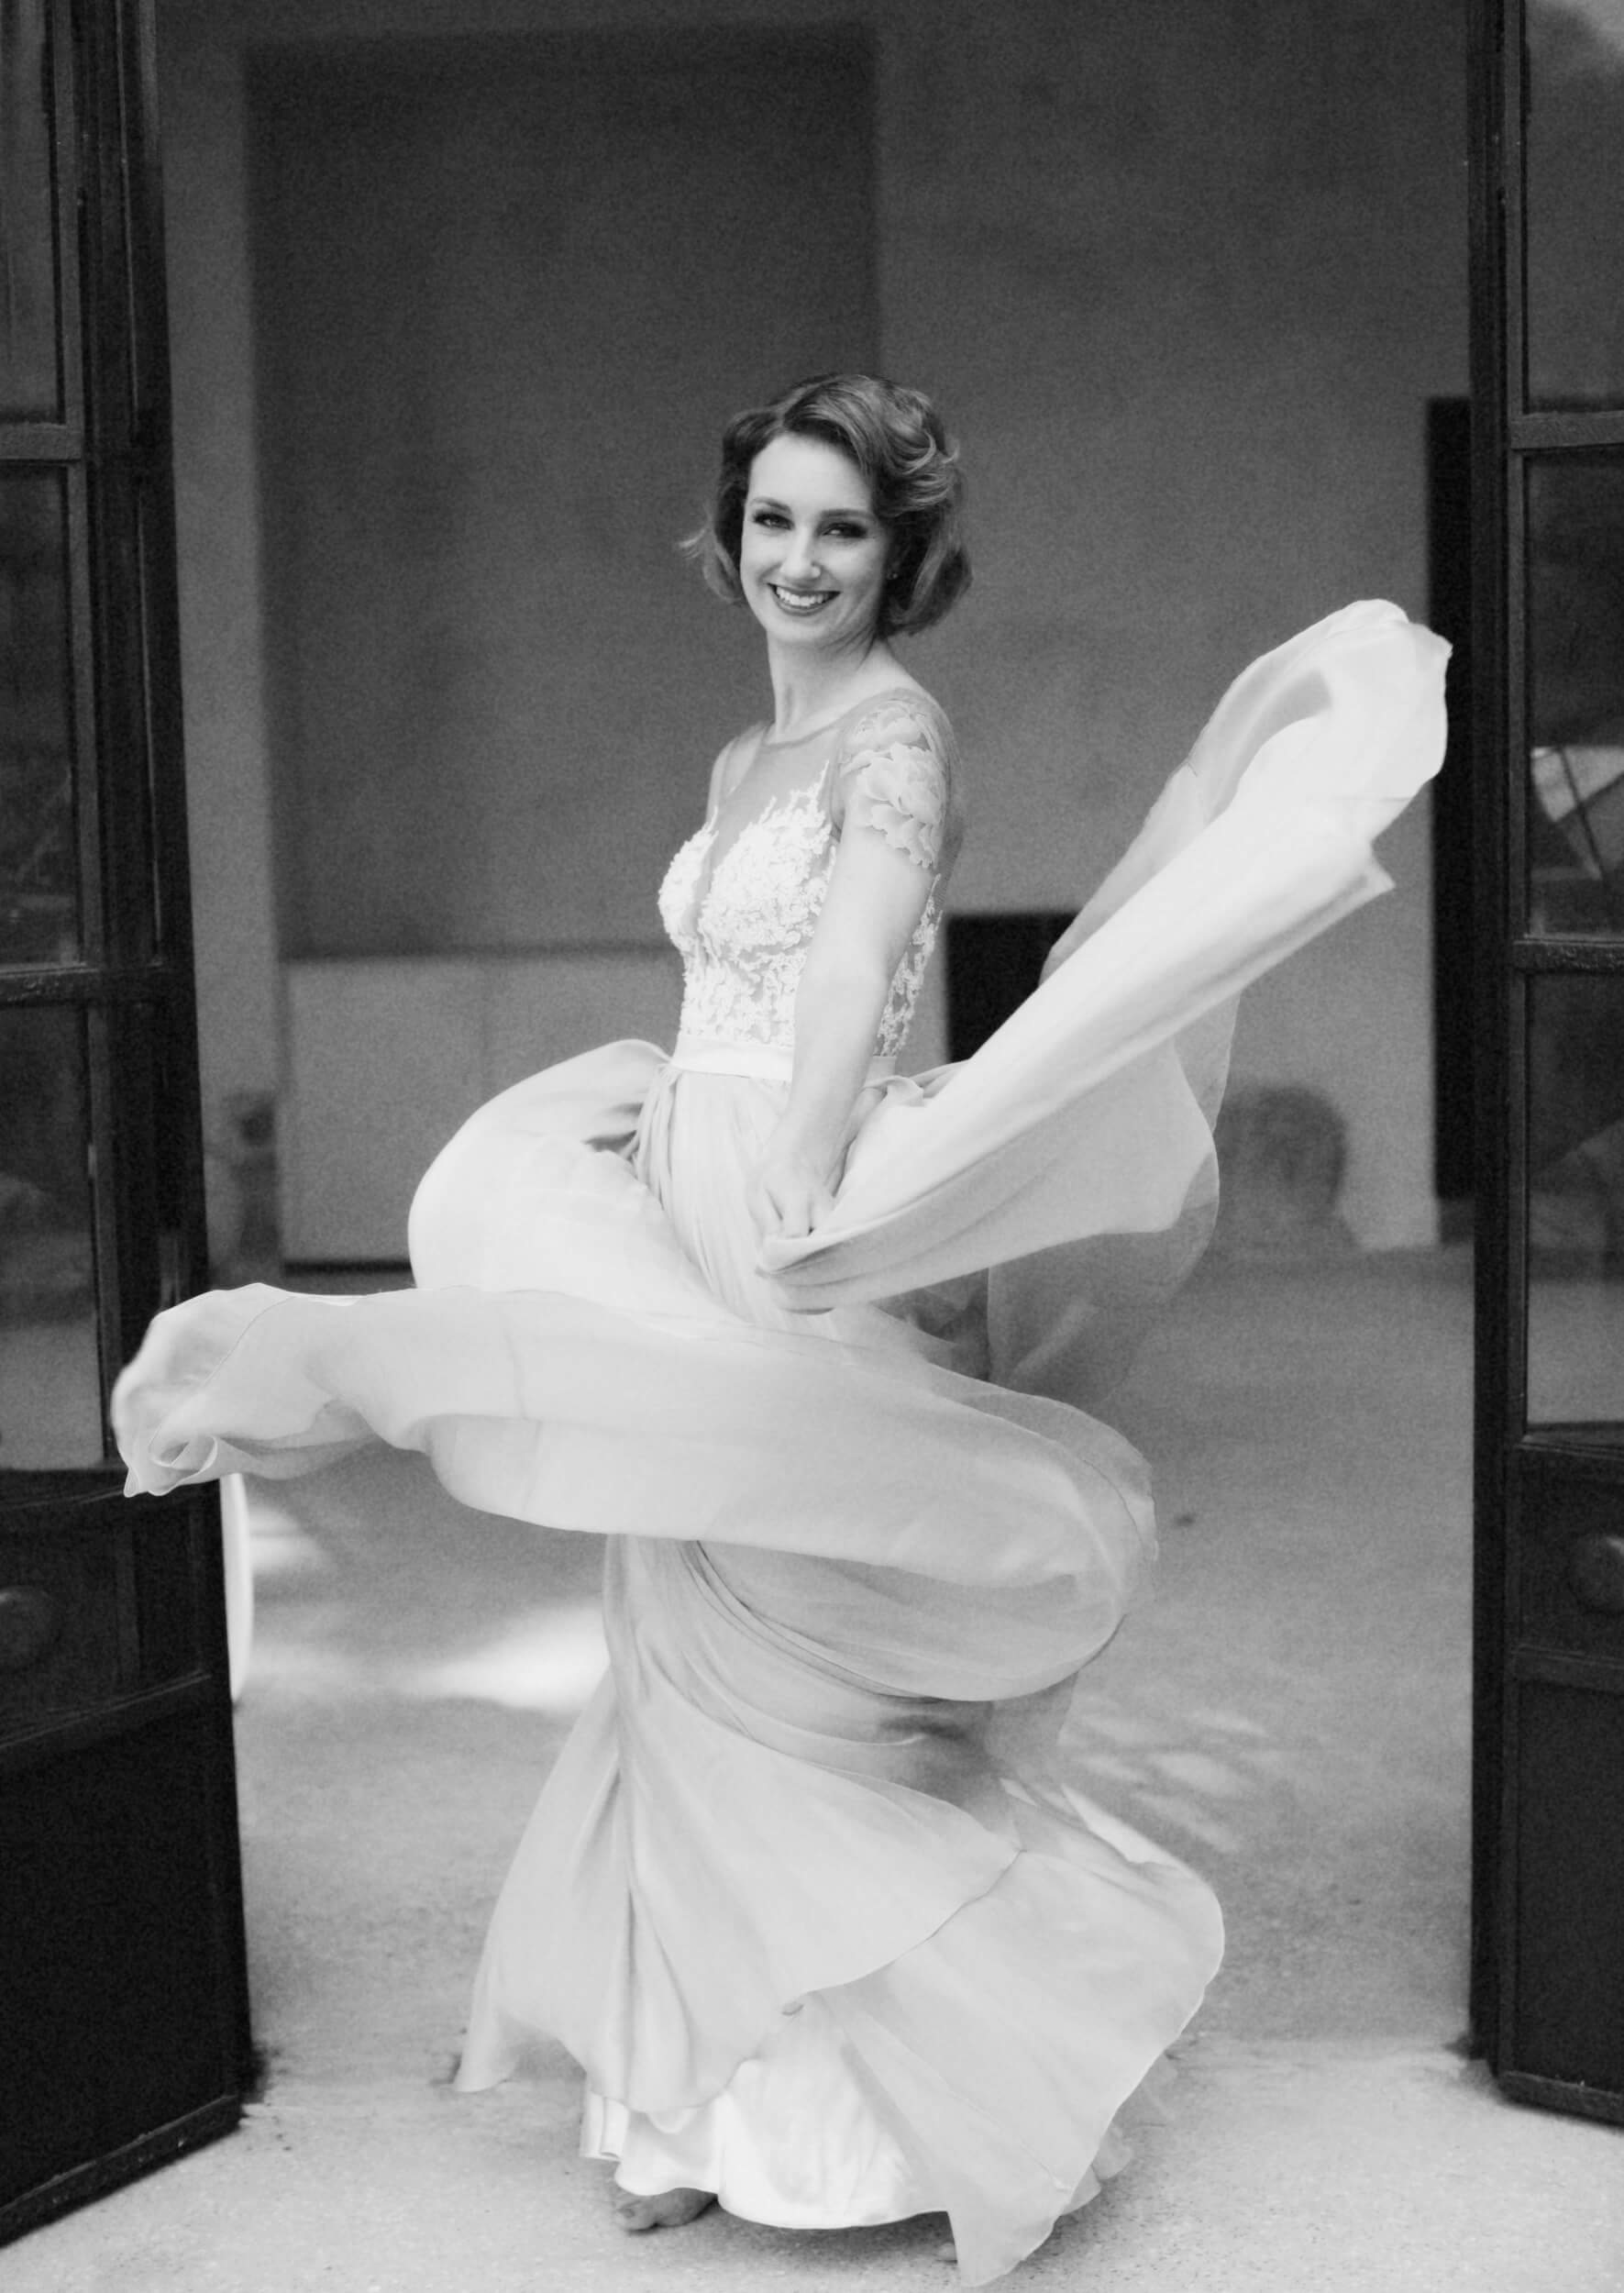 Portrait-of-lady-dancing-in-flowing-fabric-concept-art